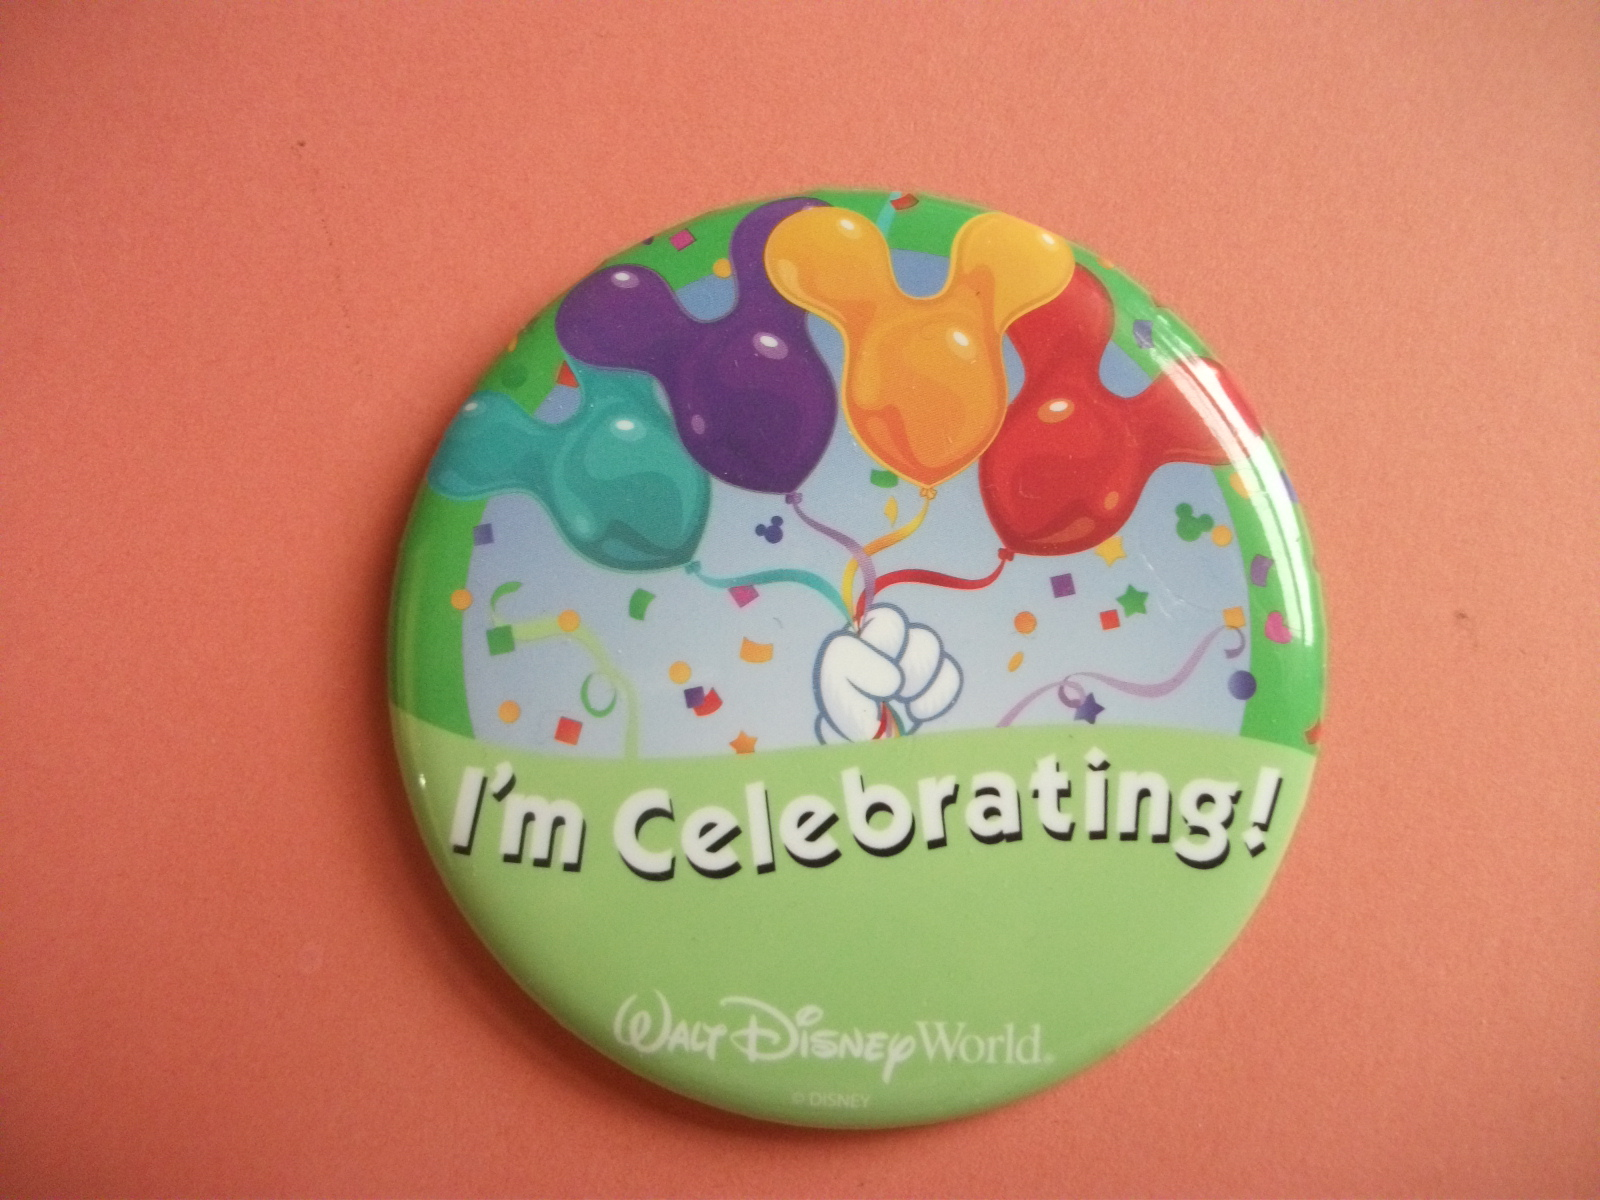 Walt Disney World Resort Swapping Out Celebration Buttons for 2016